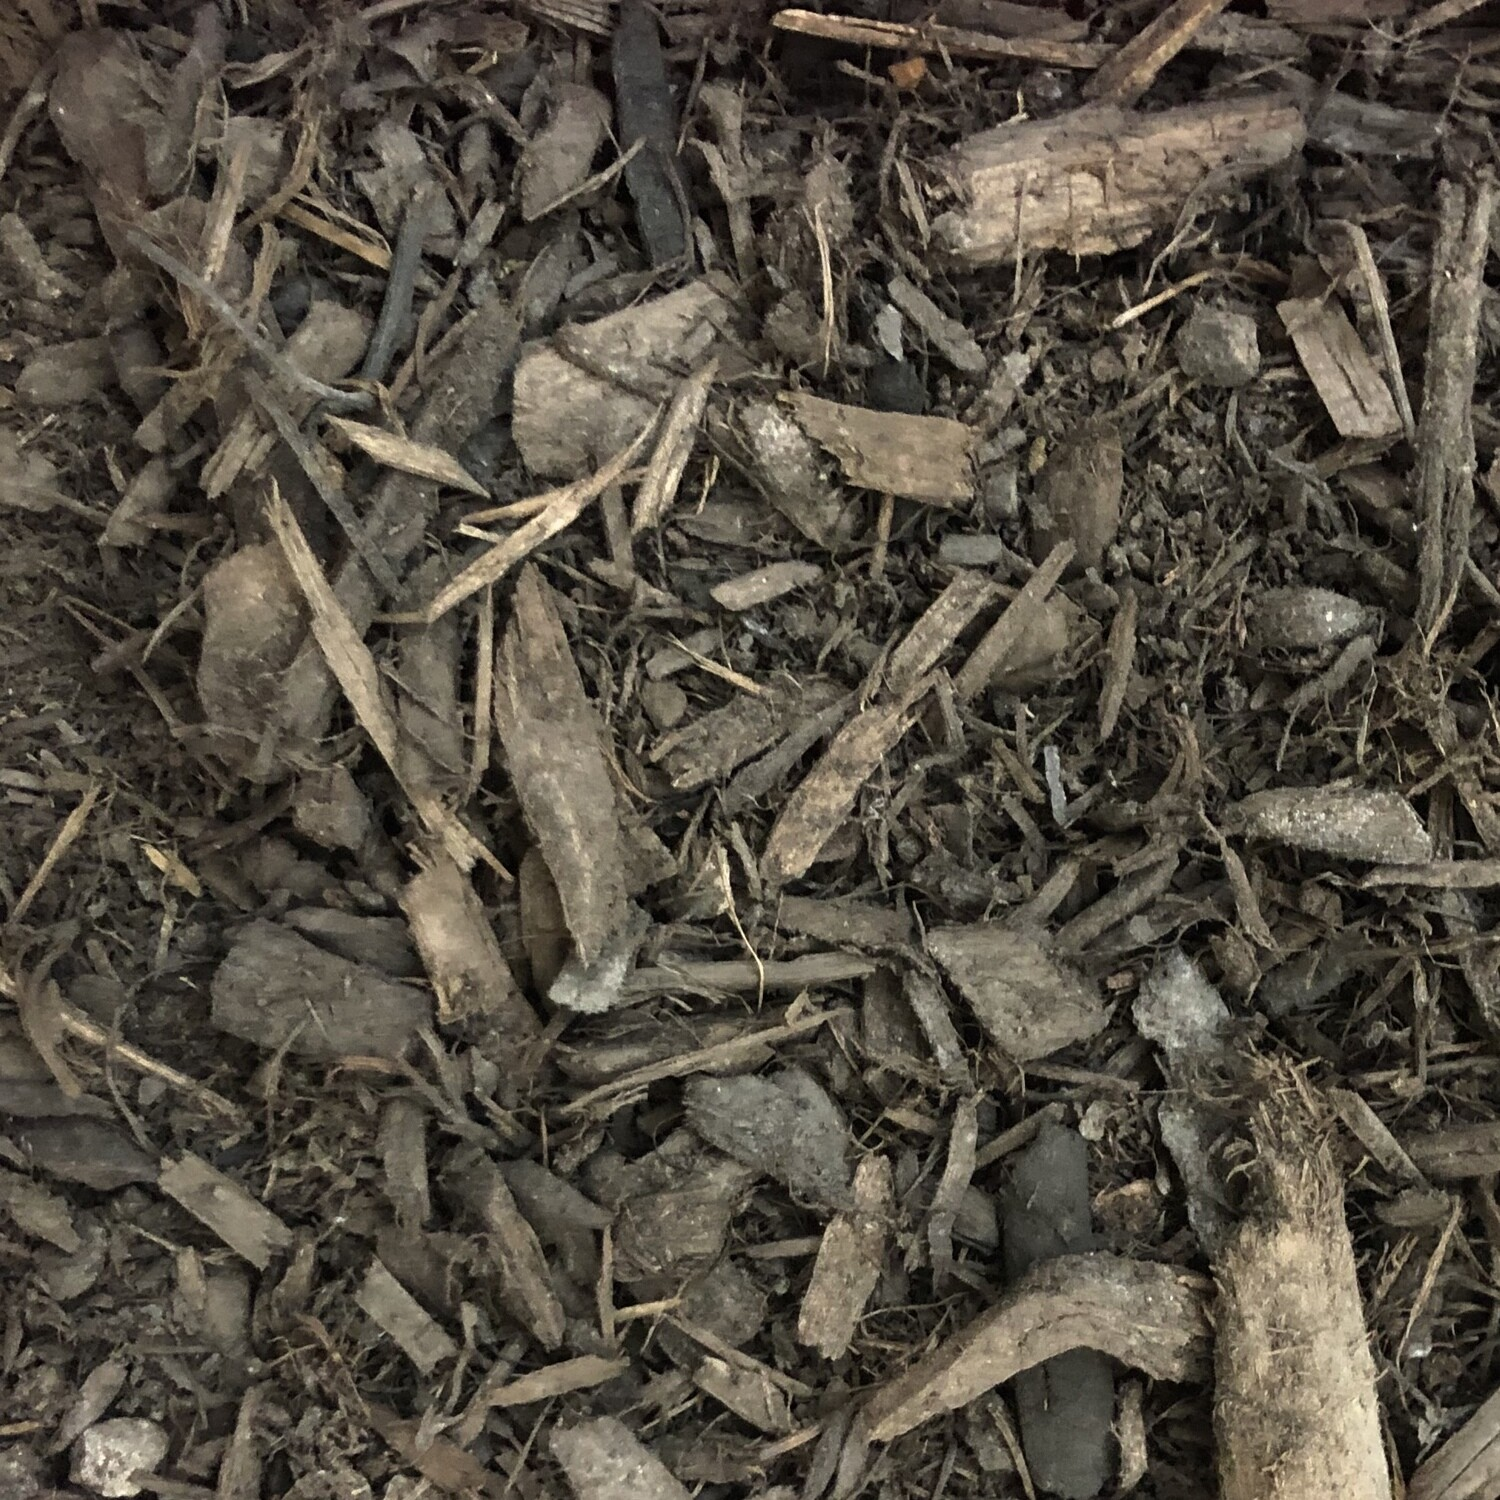 Landscapers Choice Hardwood Mulch - Bagged